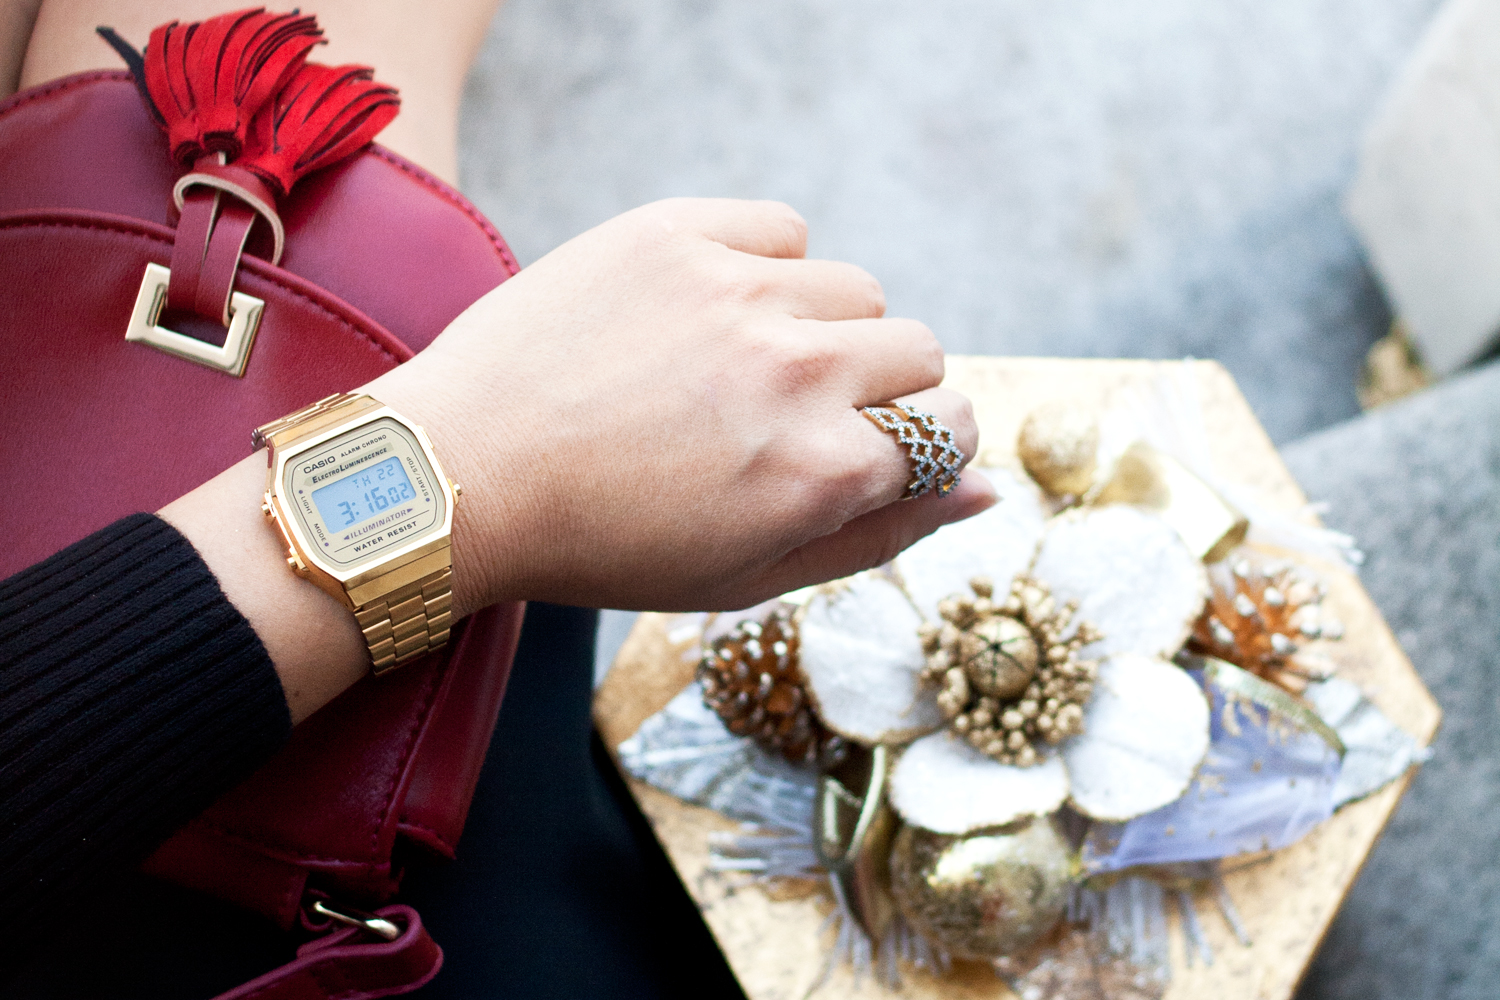 09casio-vintage-gold-watch-holiday-style-fashion